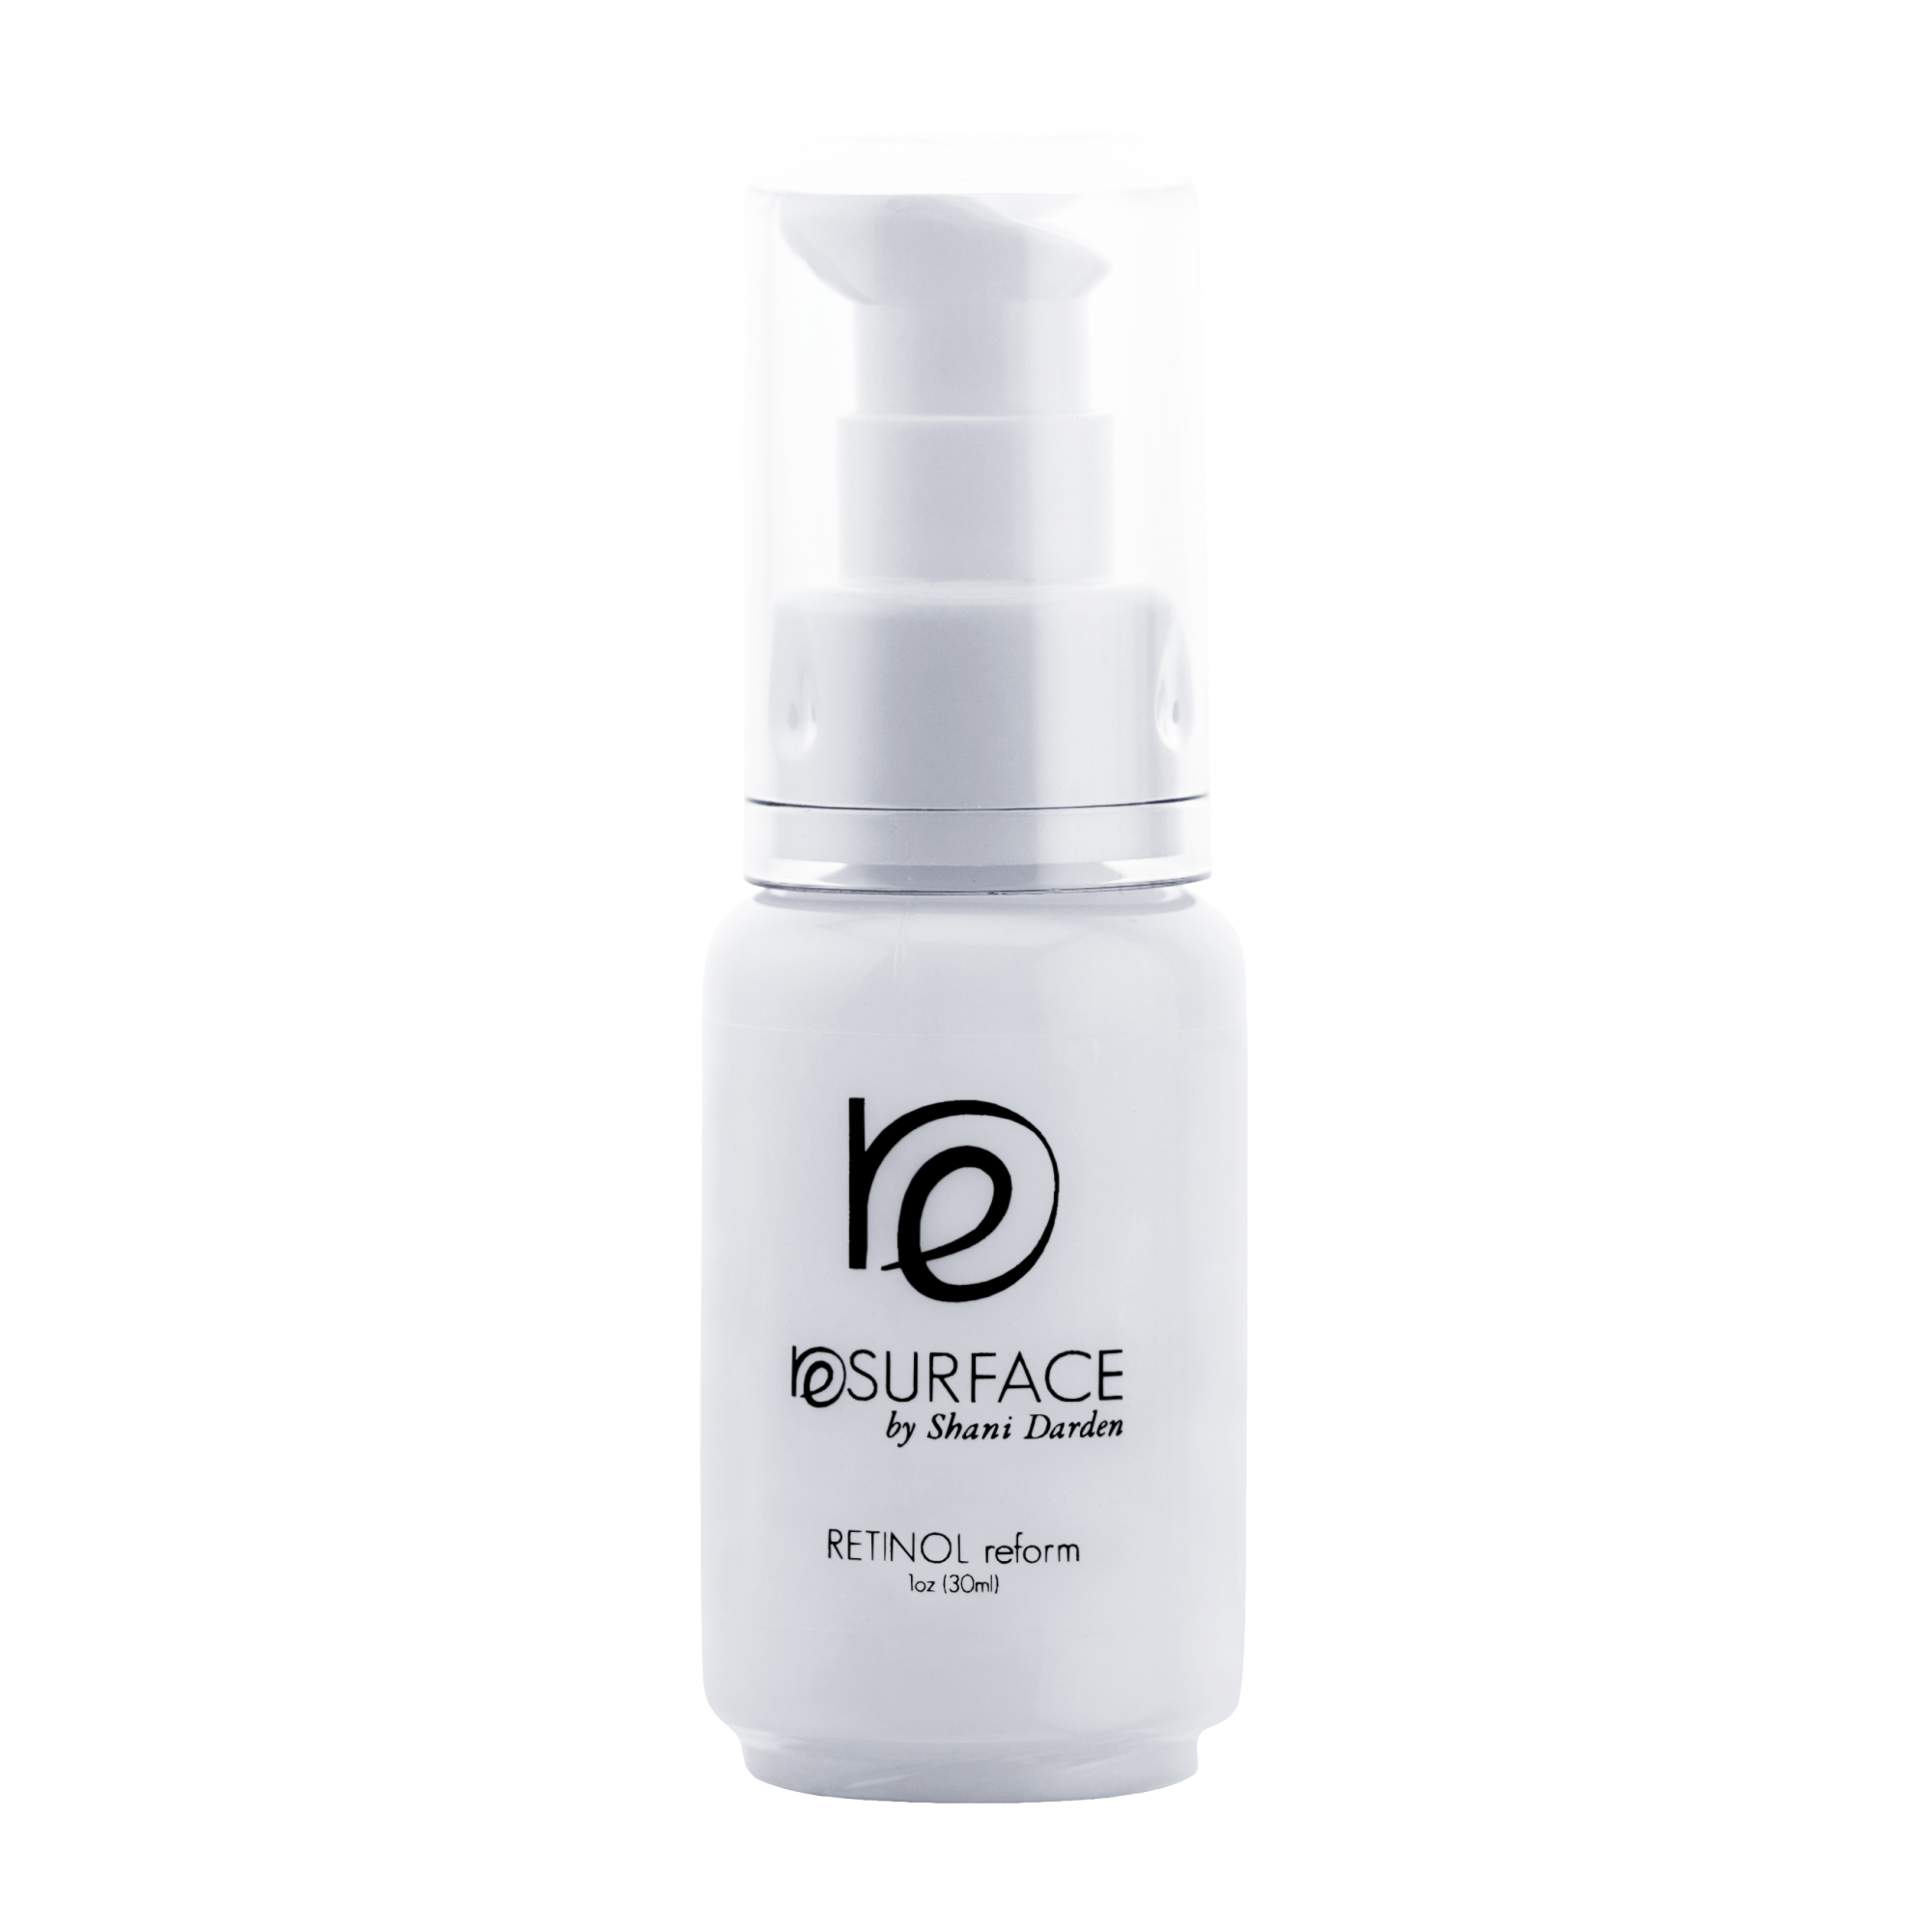 RESURFACE BY SHANI DARDEN RETINOL REFORM